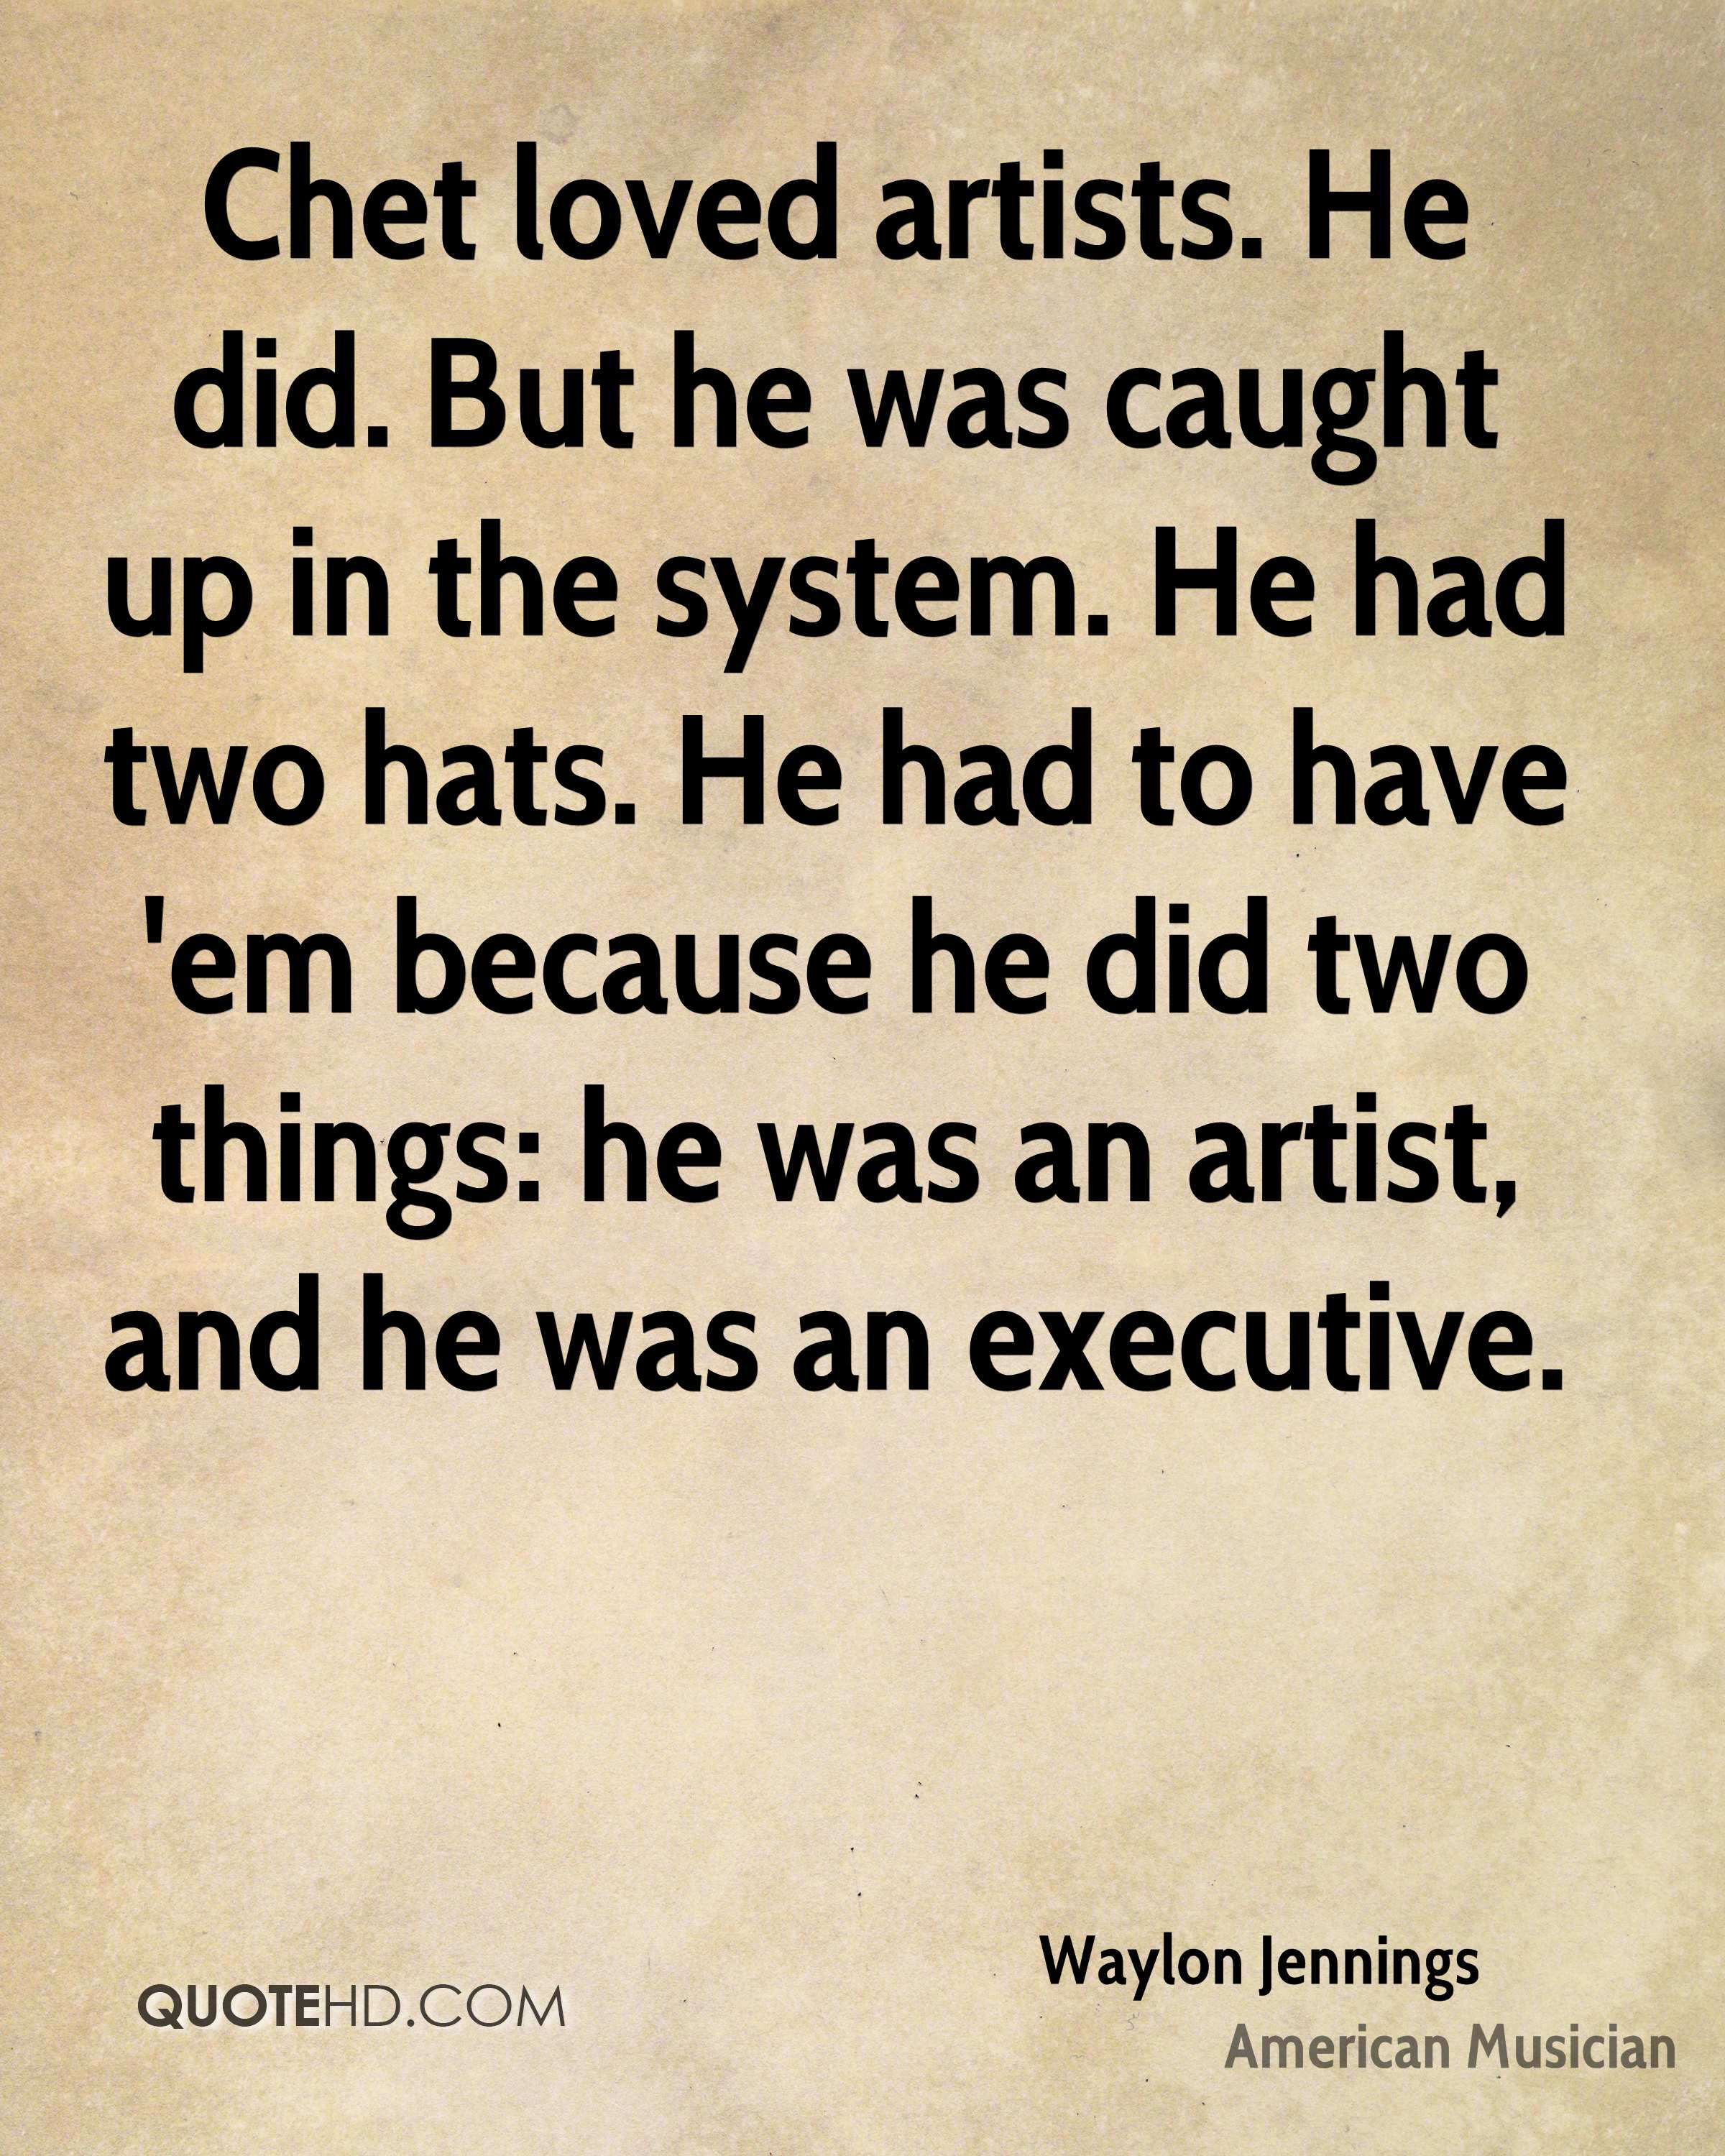 Chet loved artists. He did. But he was caught up in the system. He had two hats. He had to have 'em because he did two things: he was an artist, and he was an executive.